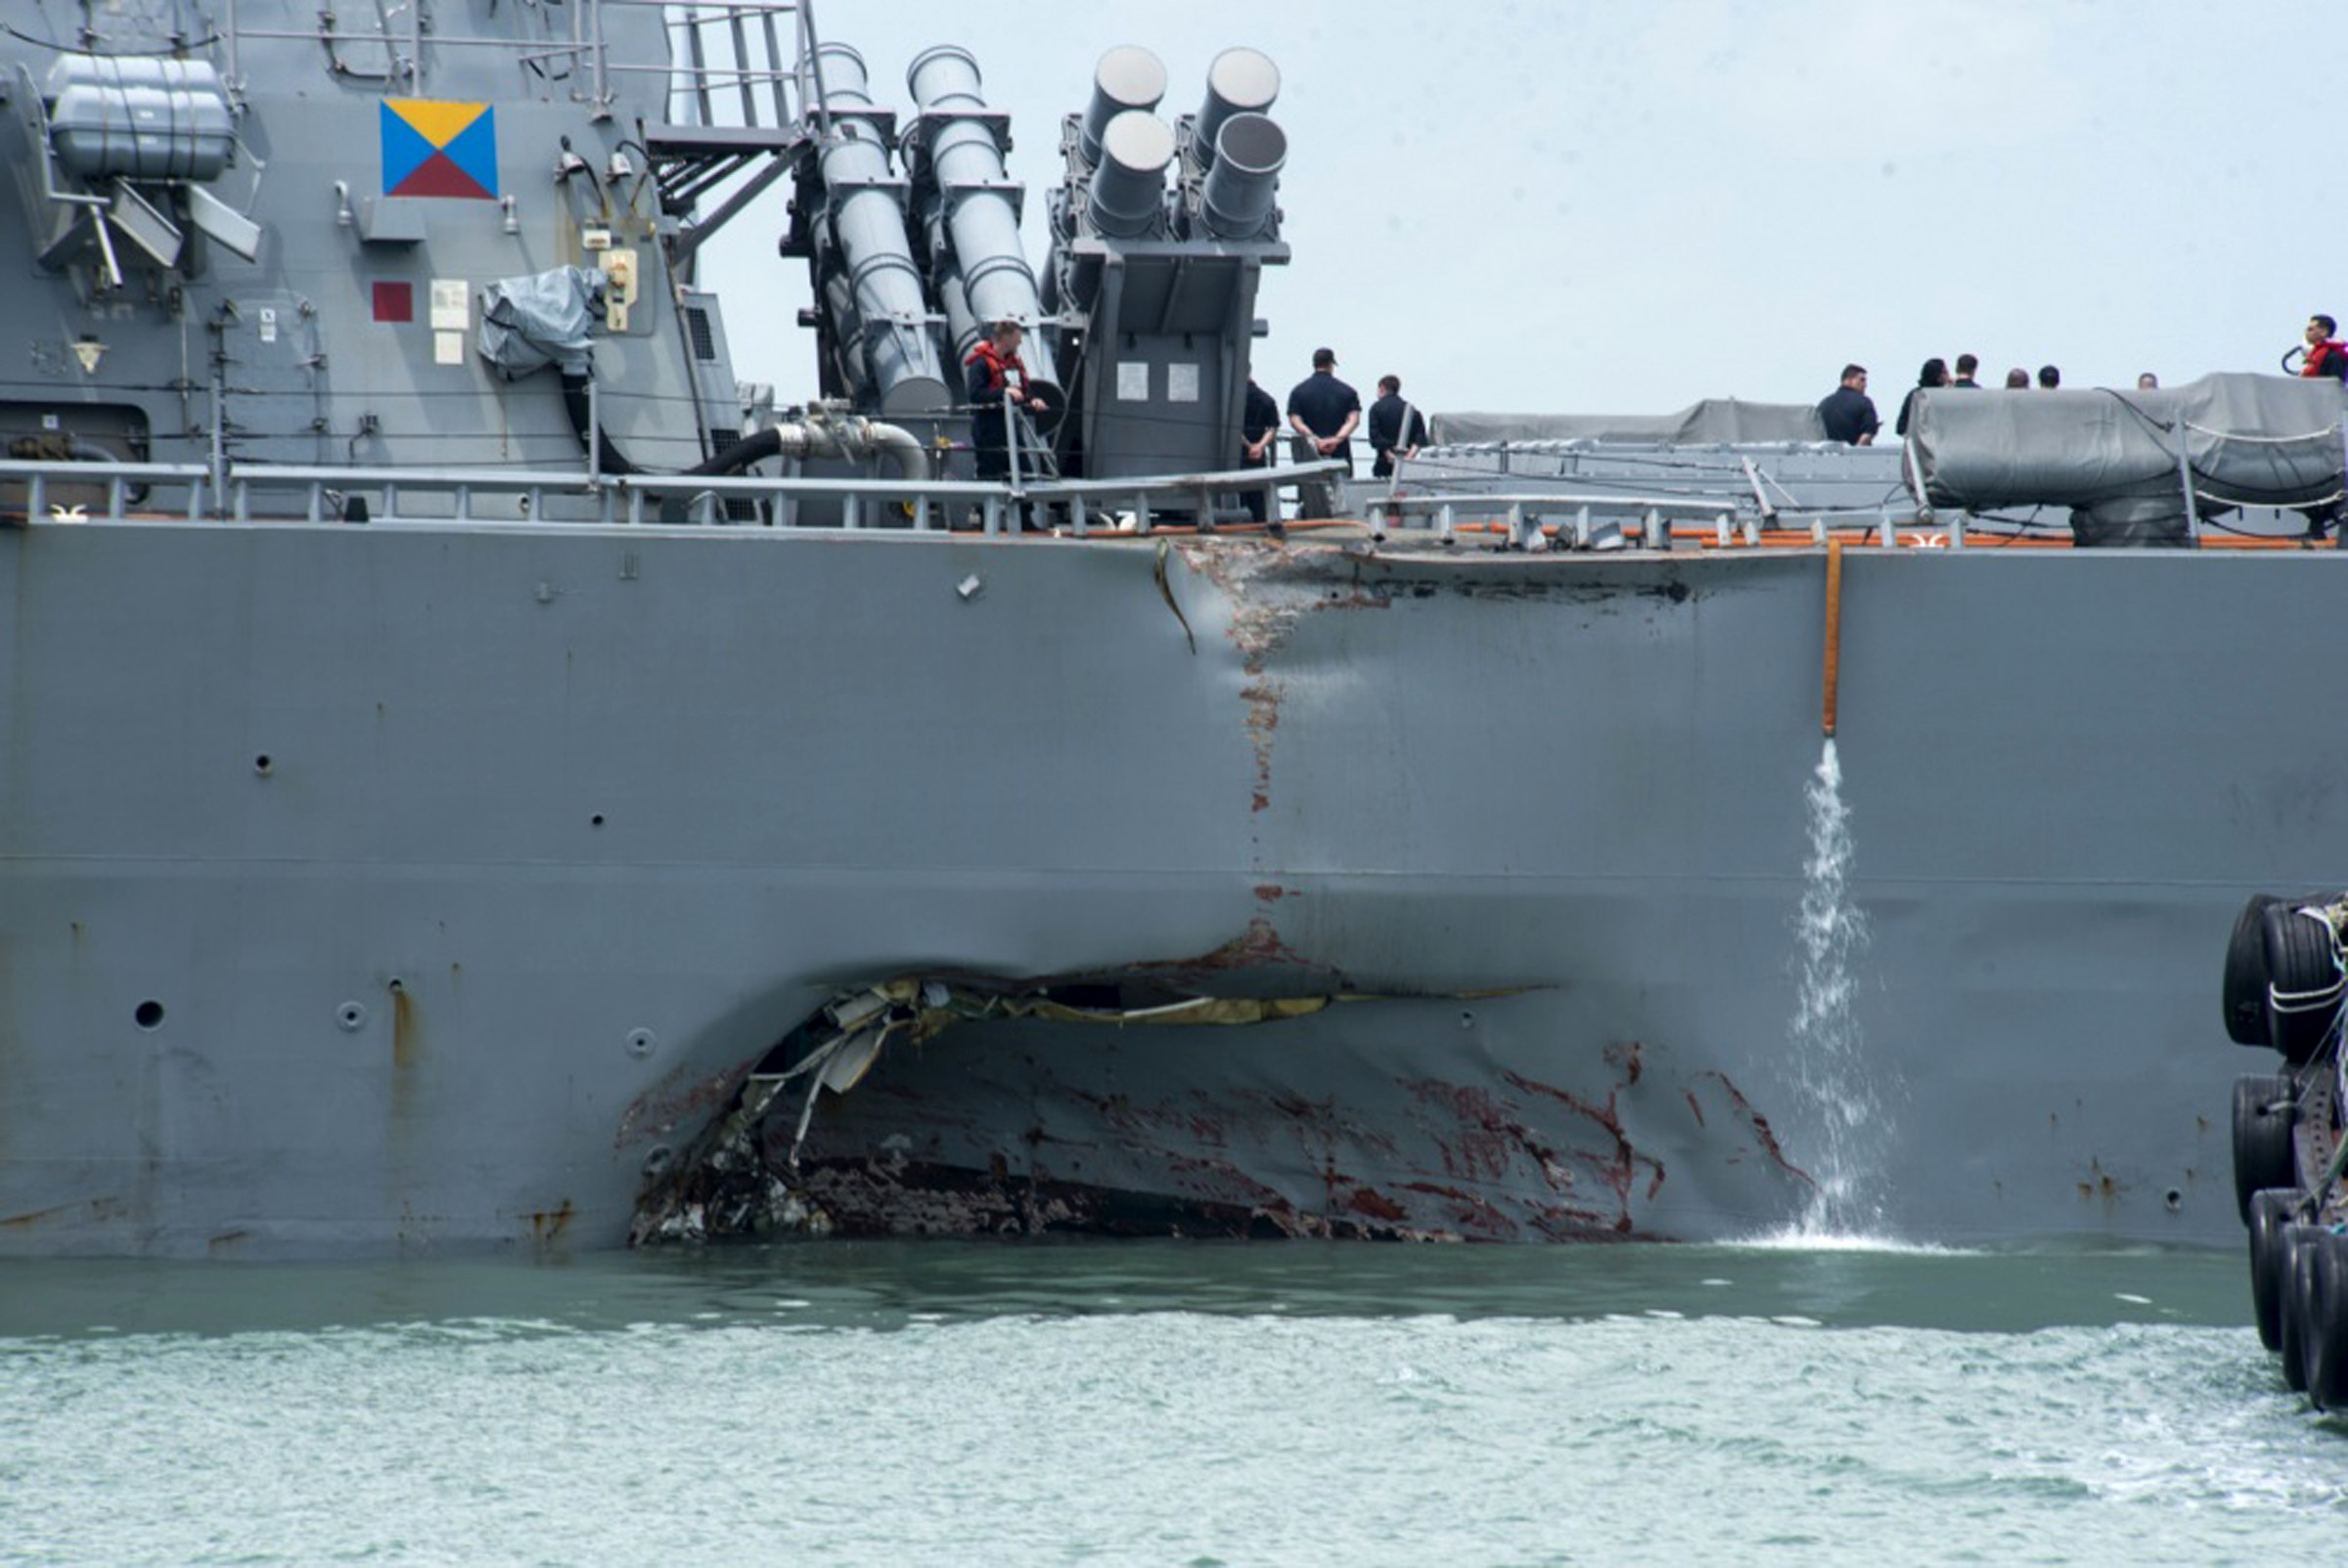 Remains of McCain sailors found aboard ship as the search continues